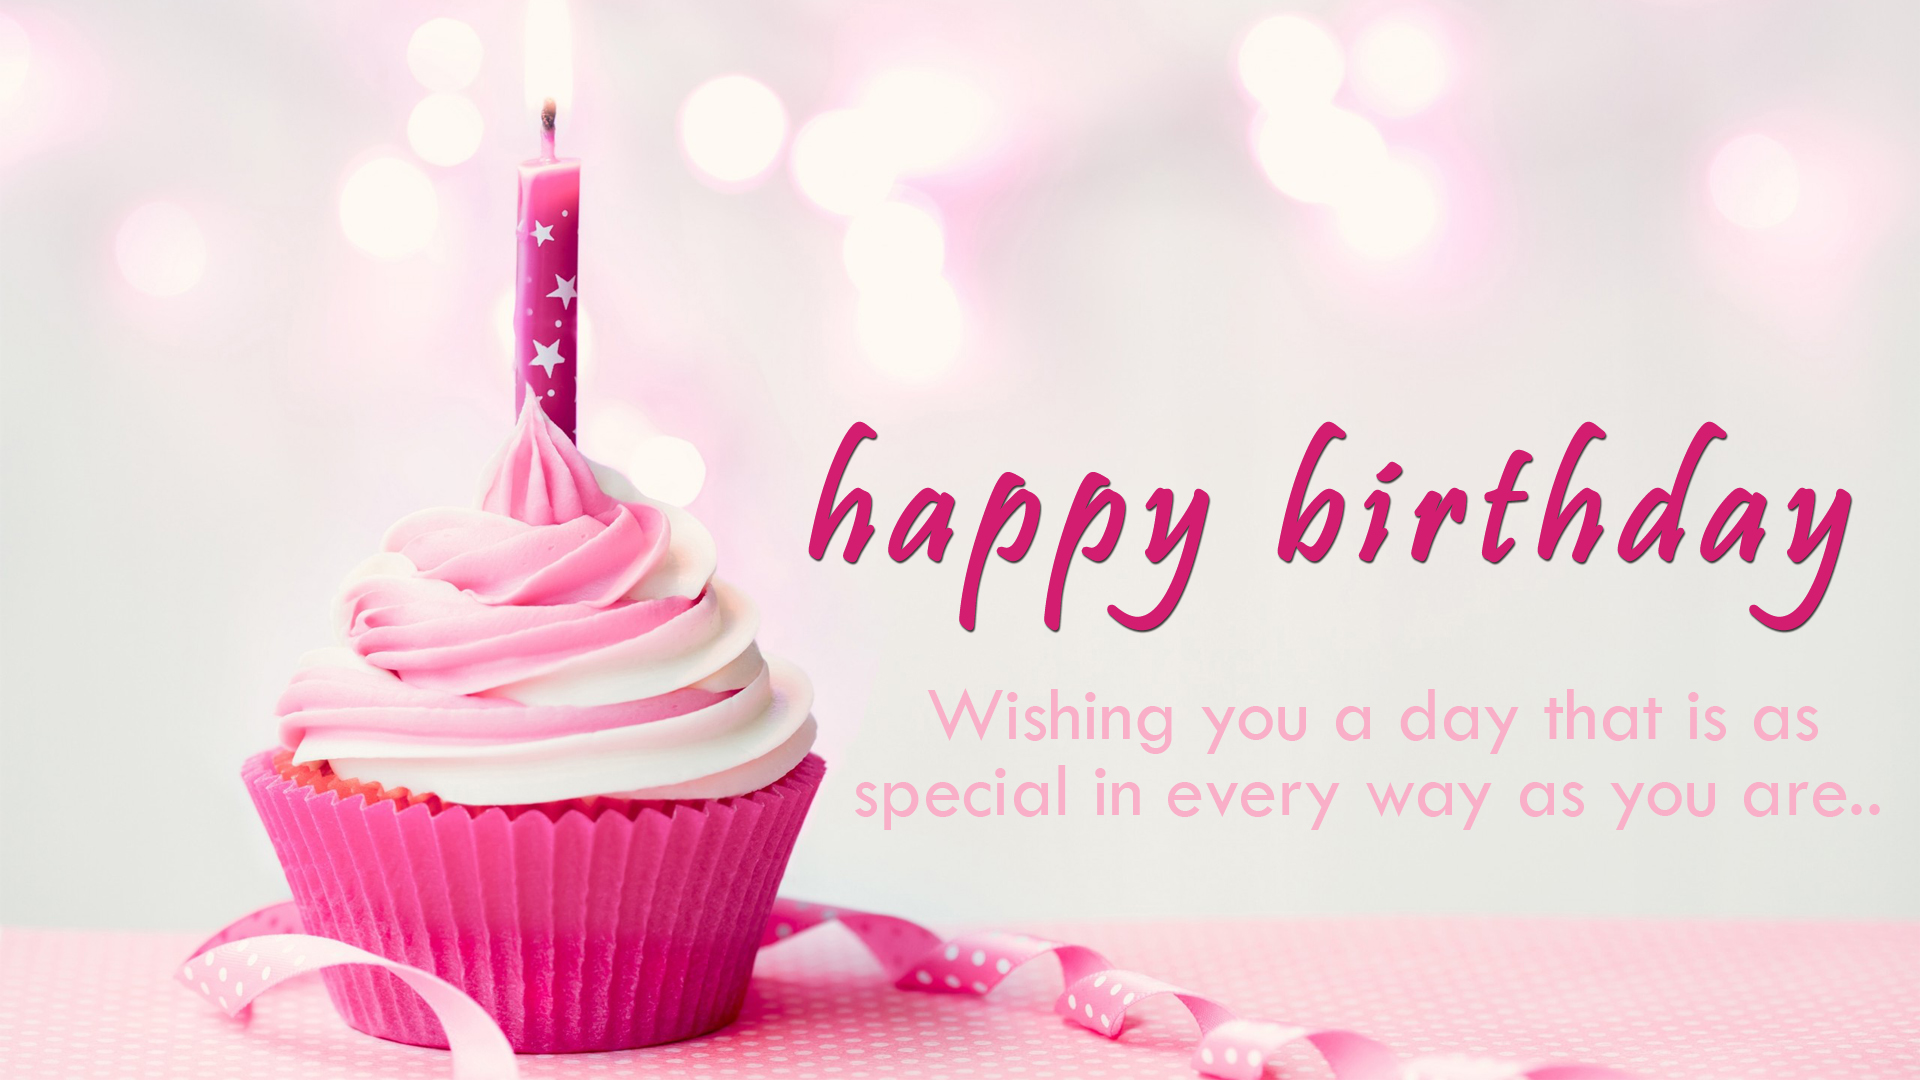 birthday wishes background wallpaper ; Happy_Birthday_Wishes_Greeting_HD_Wallpapers_Background